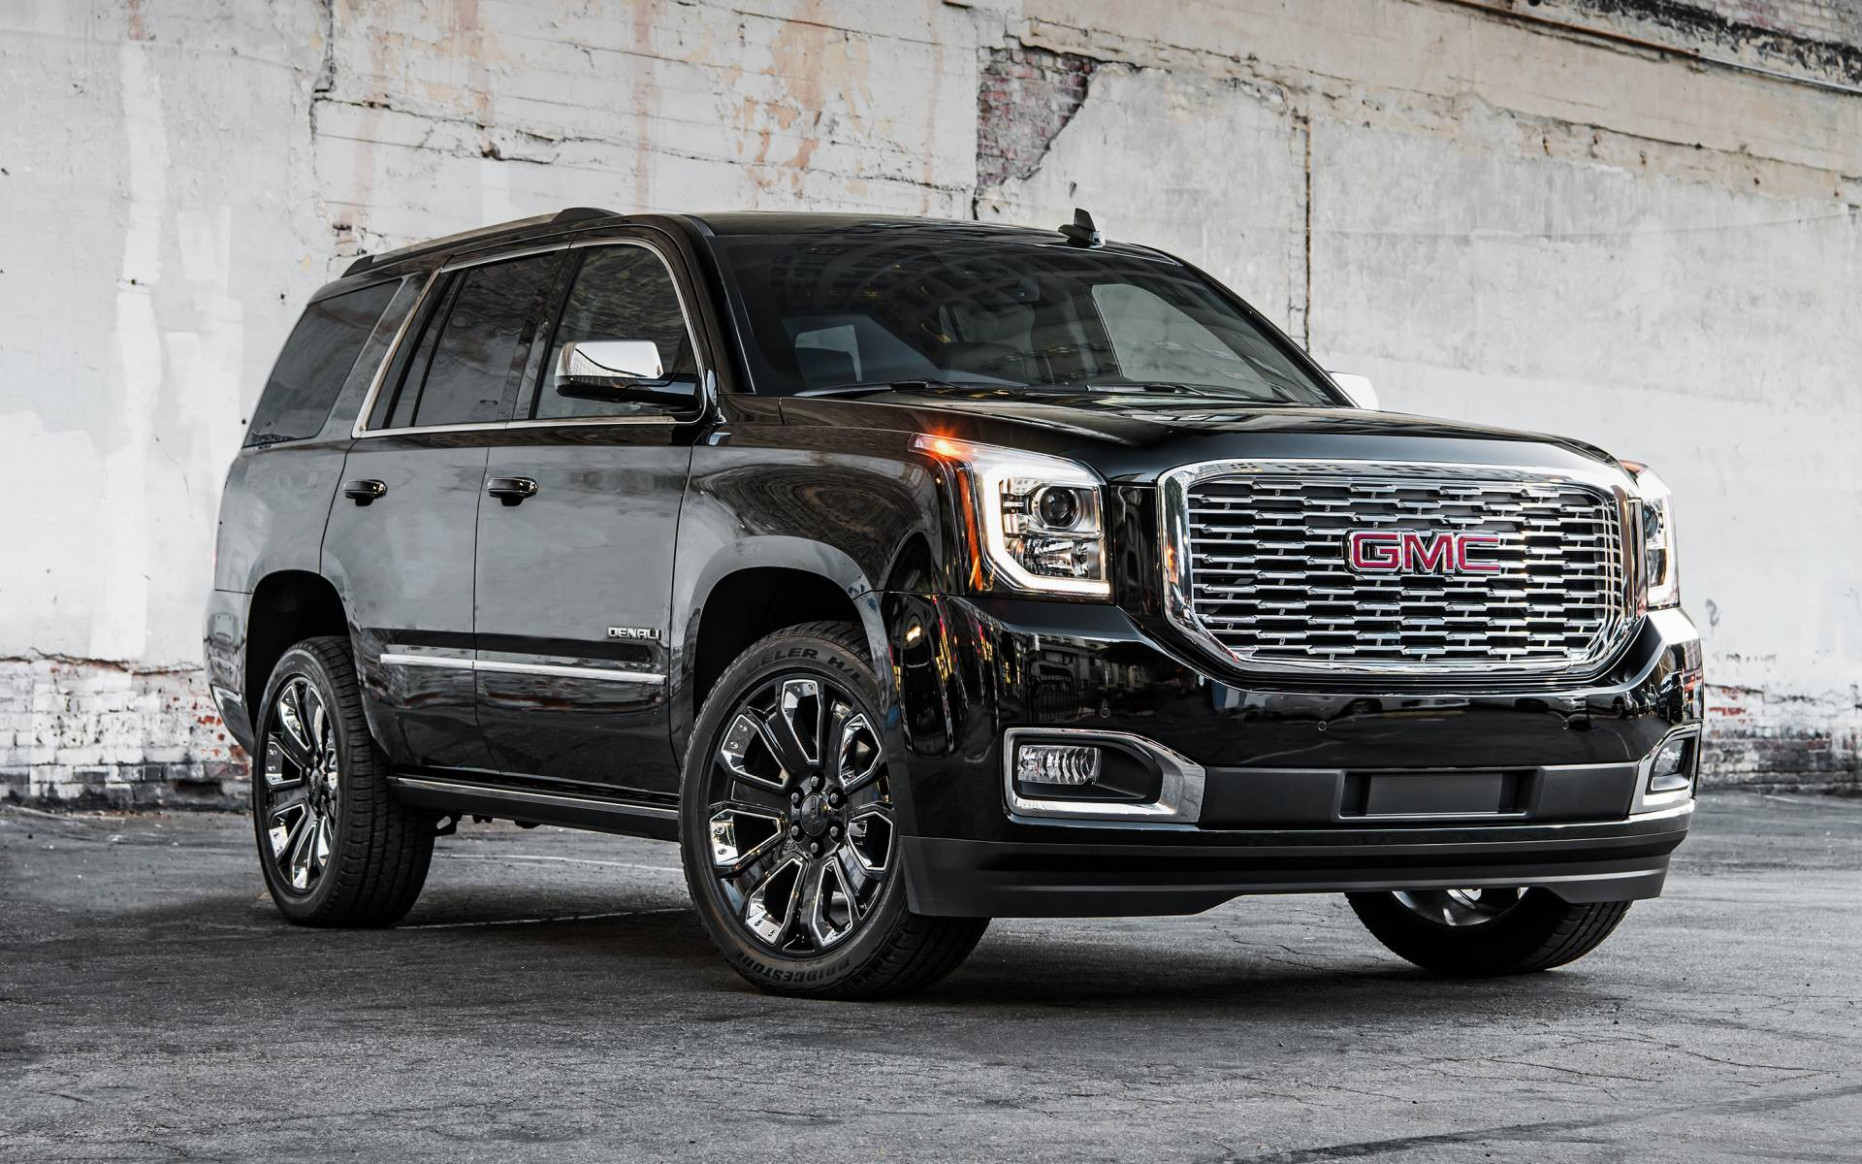 6 GMC Yukon - News, reviews, picture galleries and videos - The ...